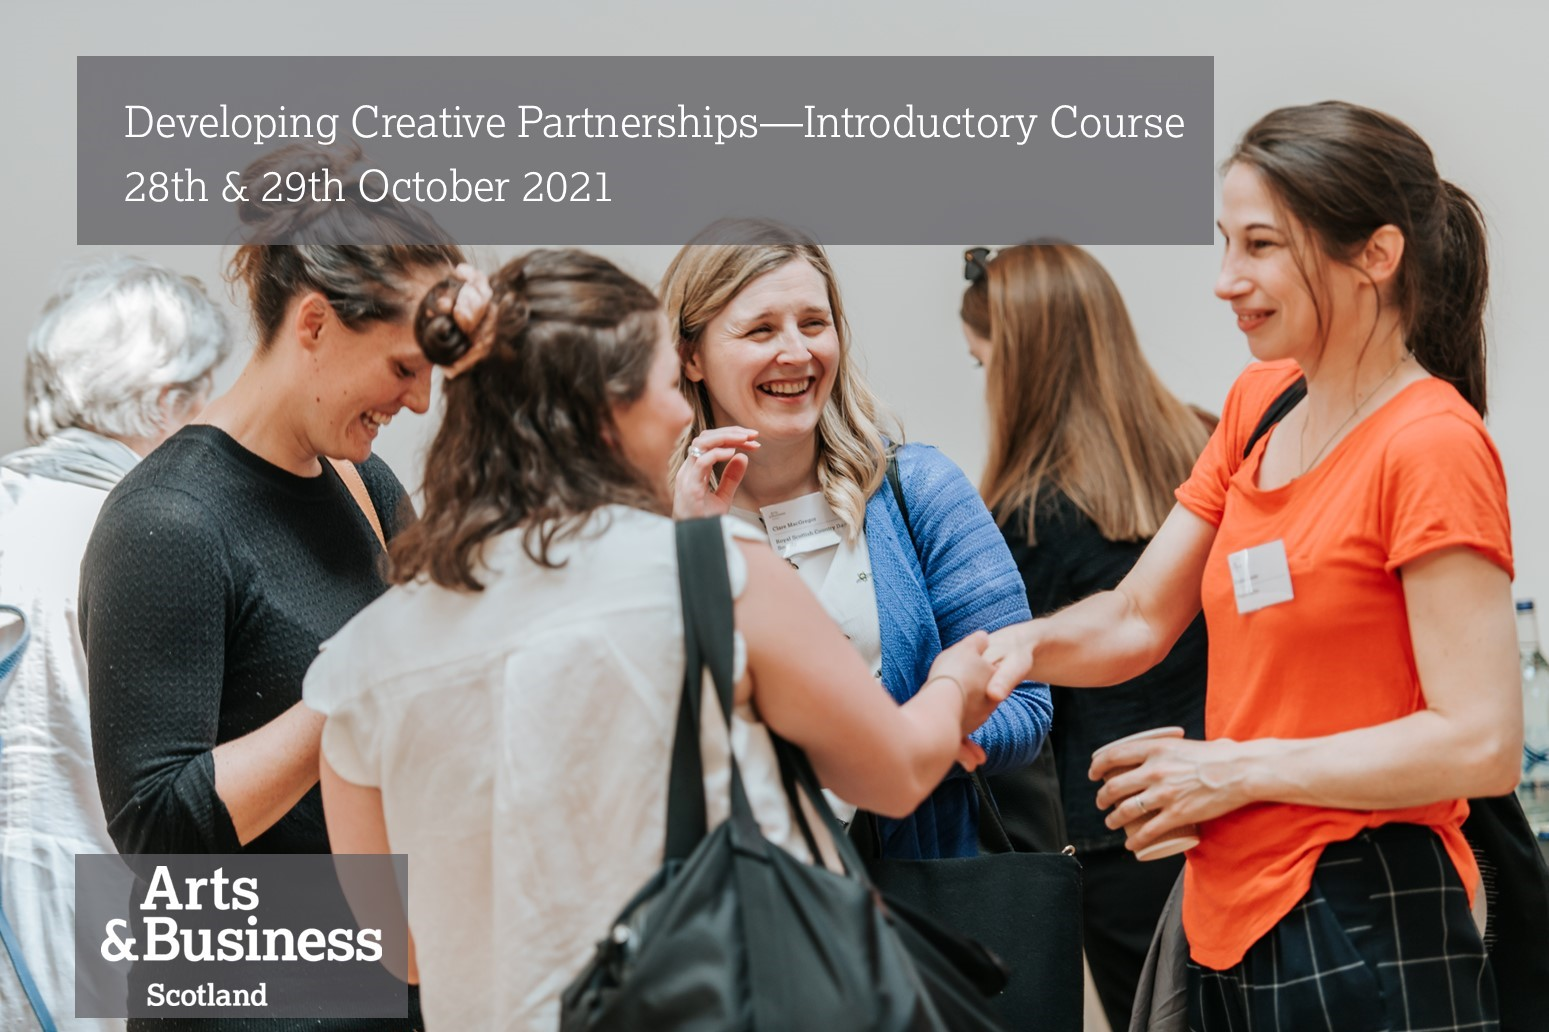 Developing Creative Partnerships - Introductory Course Image #0